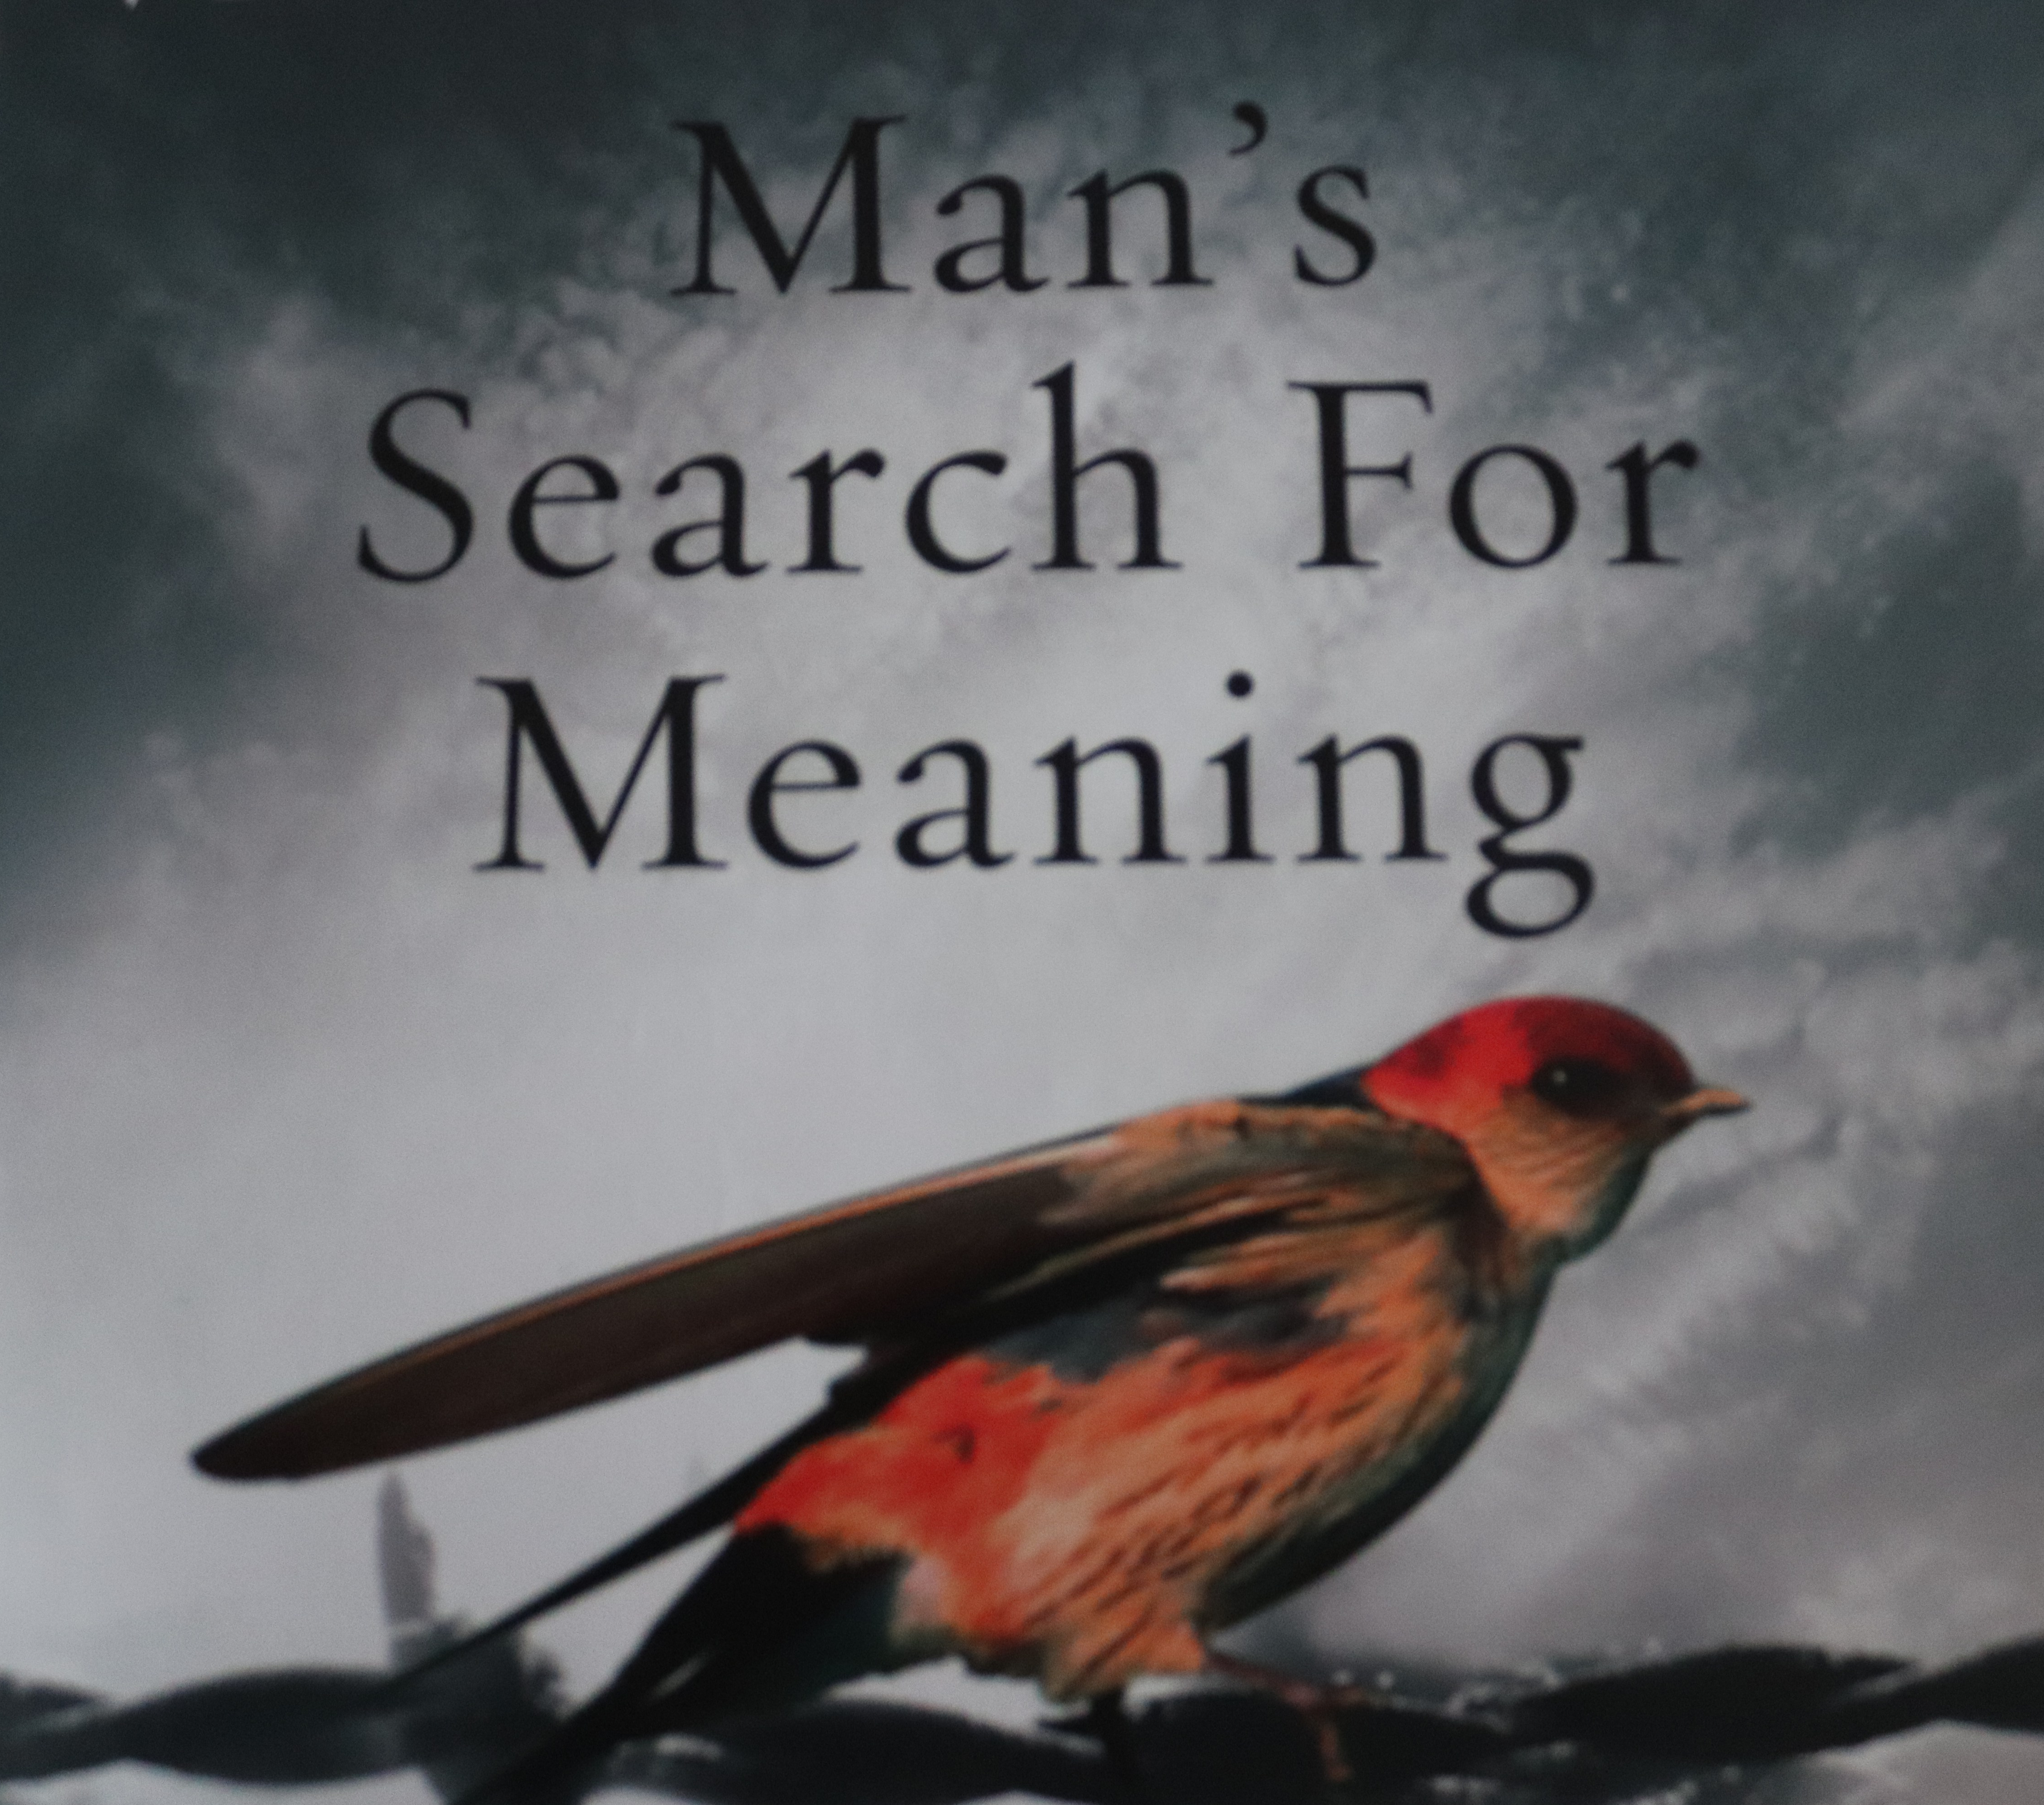 Book Review - Man's Search For Meaning by Viktor E. Frankl